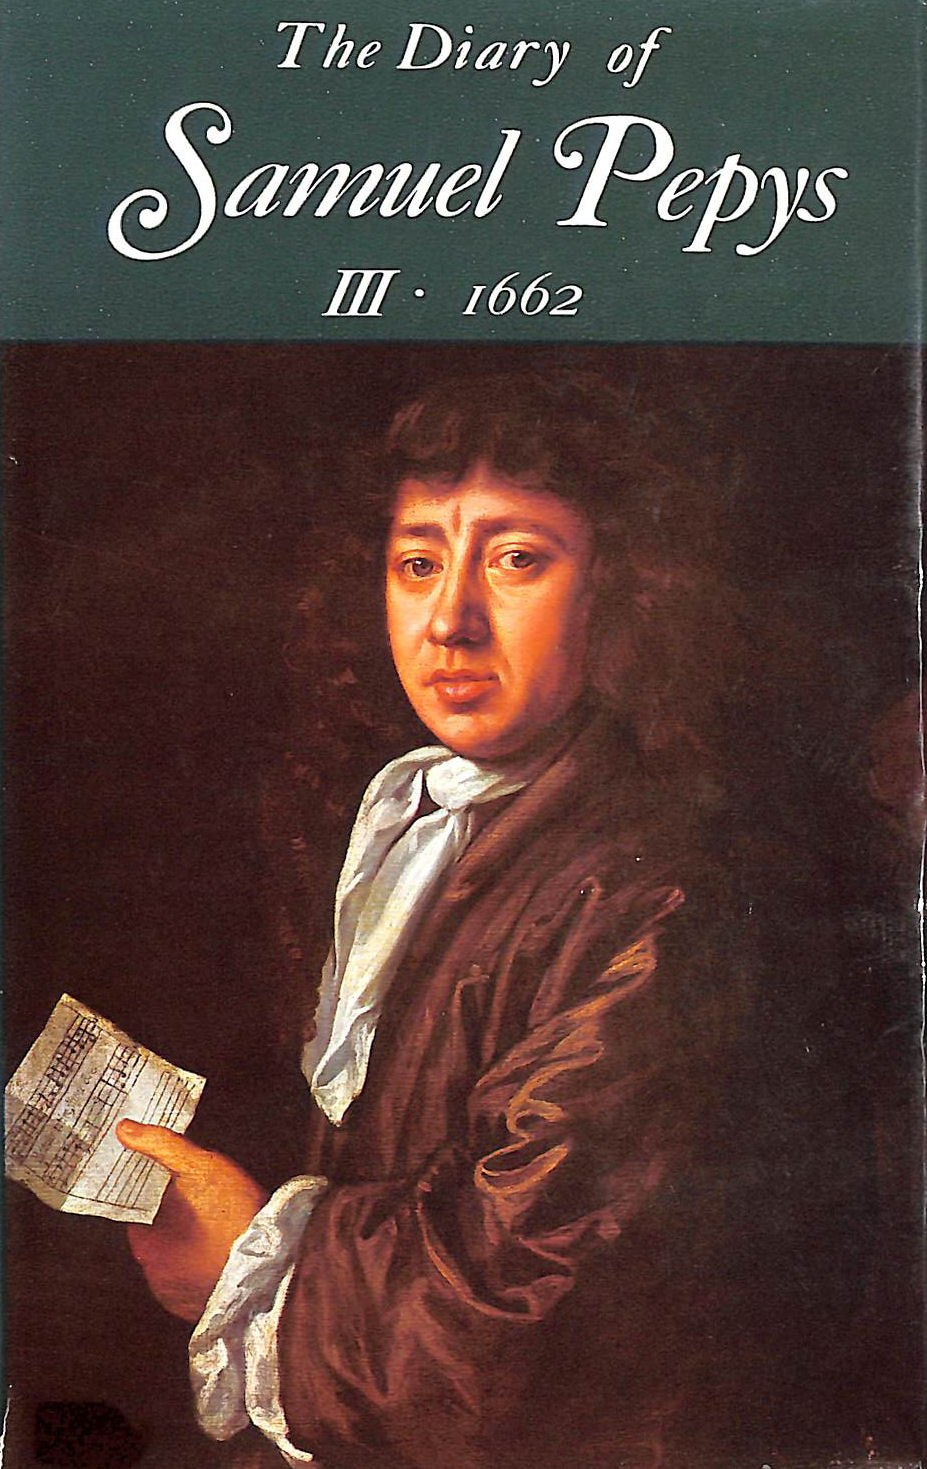 Image for The Diary of Samuel Pepys Volume III 1662